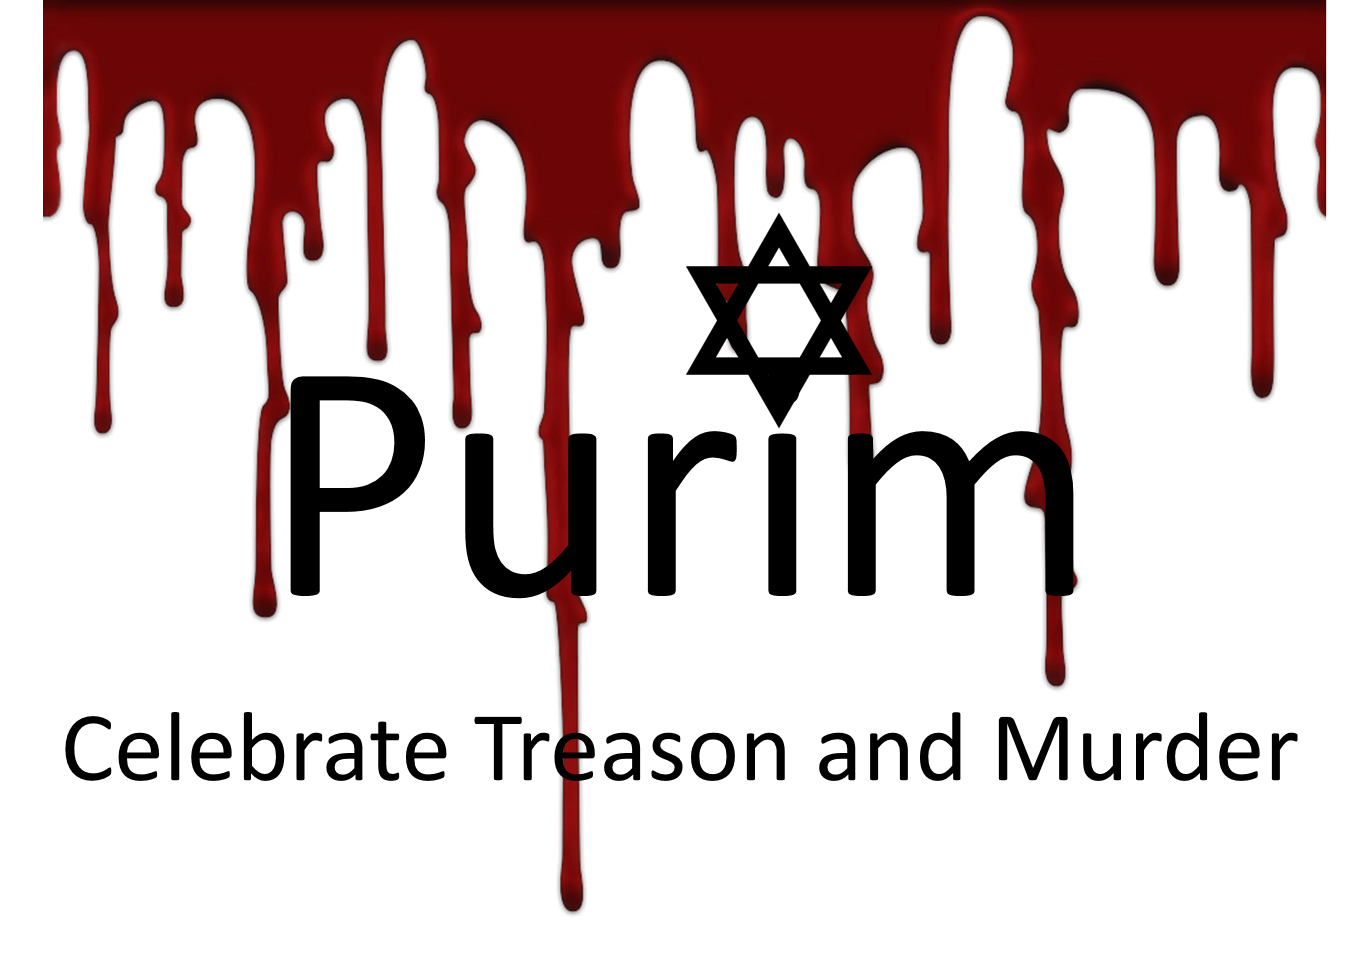 Purim-Celebrate-Treason-And-Muder-ad2.png